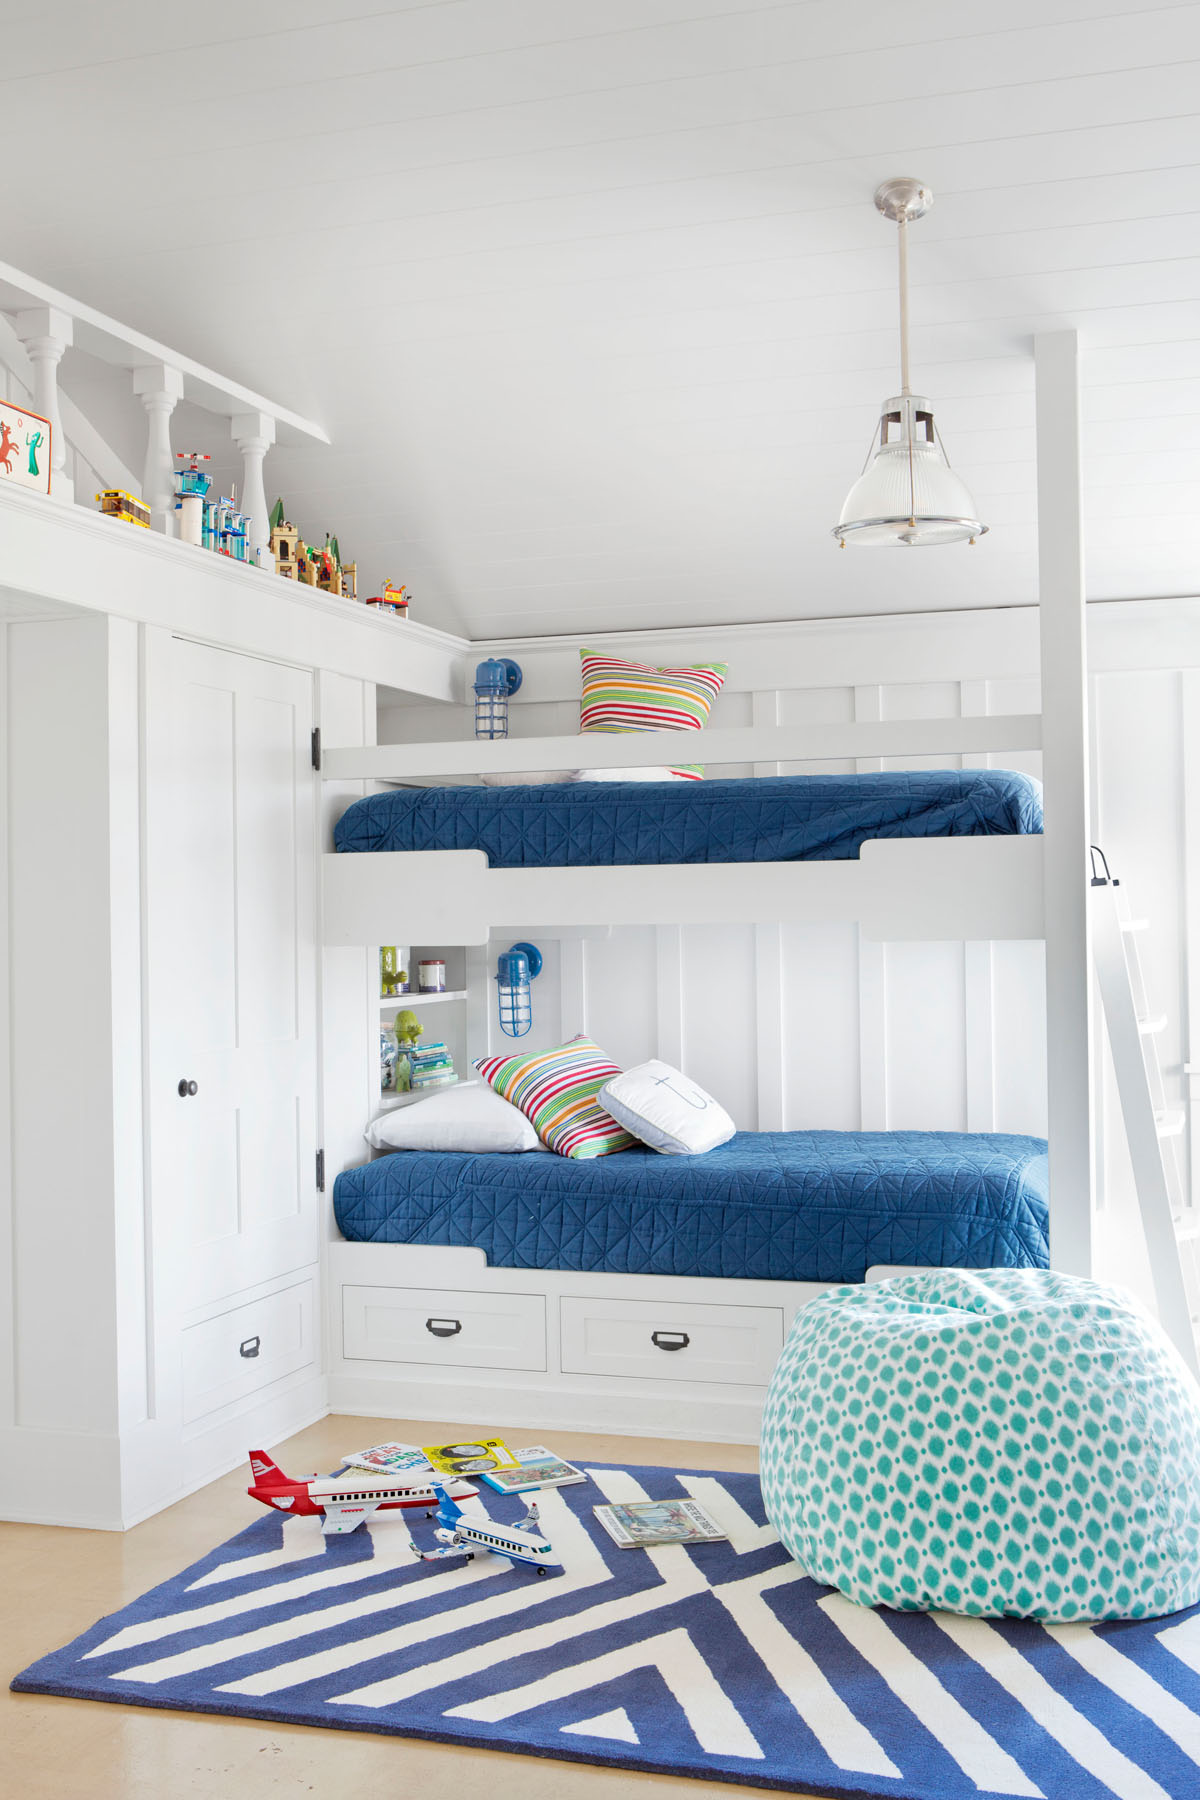 Toddler Boy Room Design: Room Decor And Themes For A